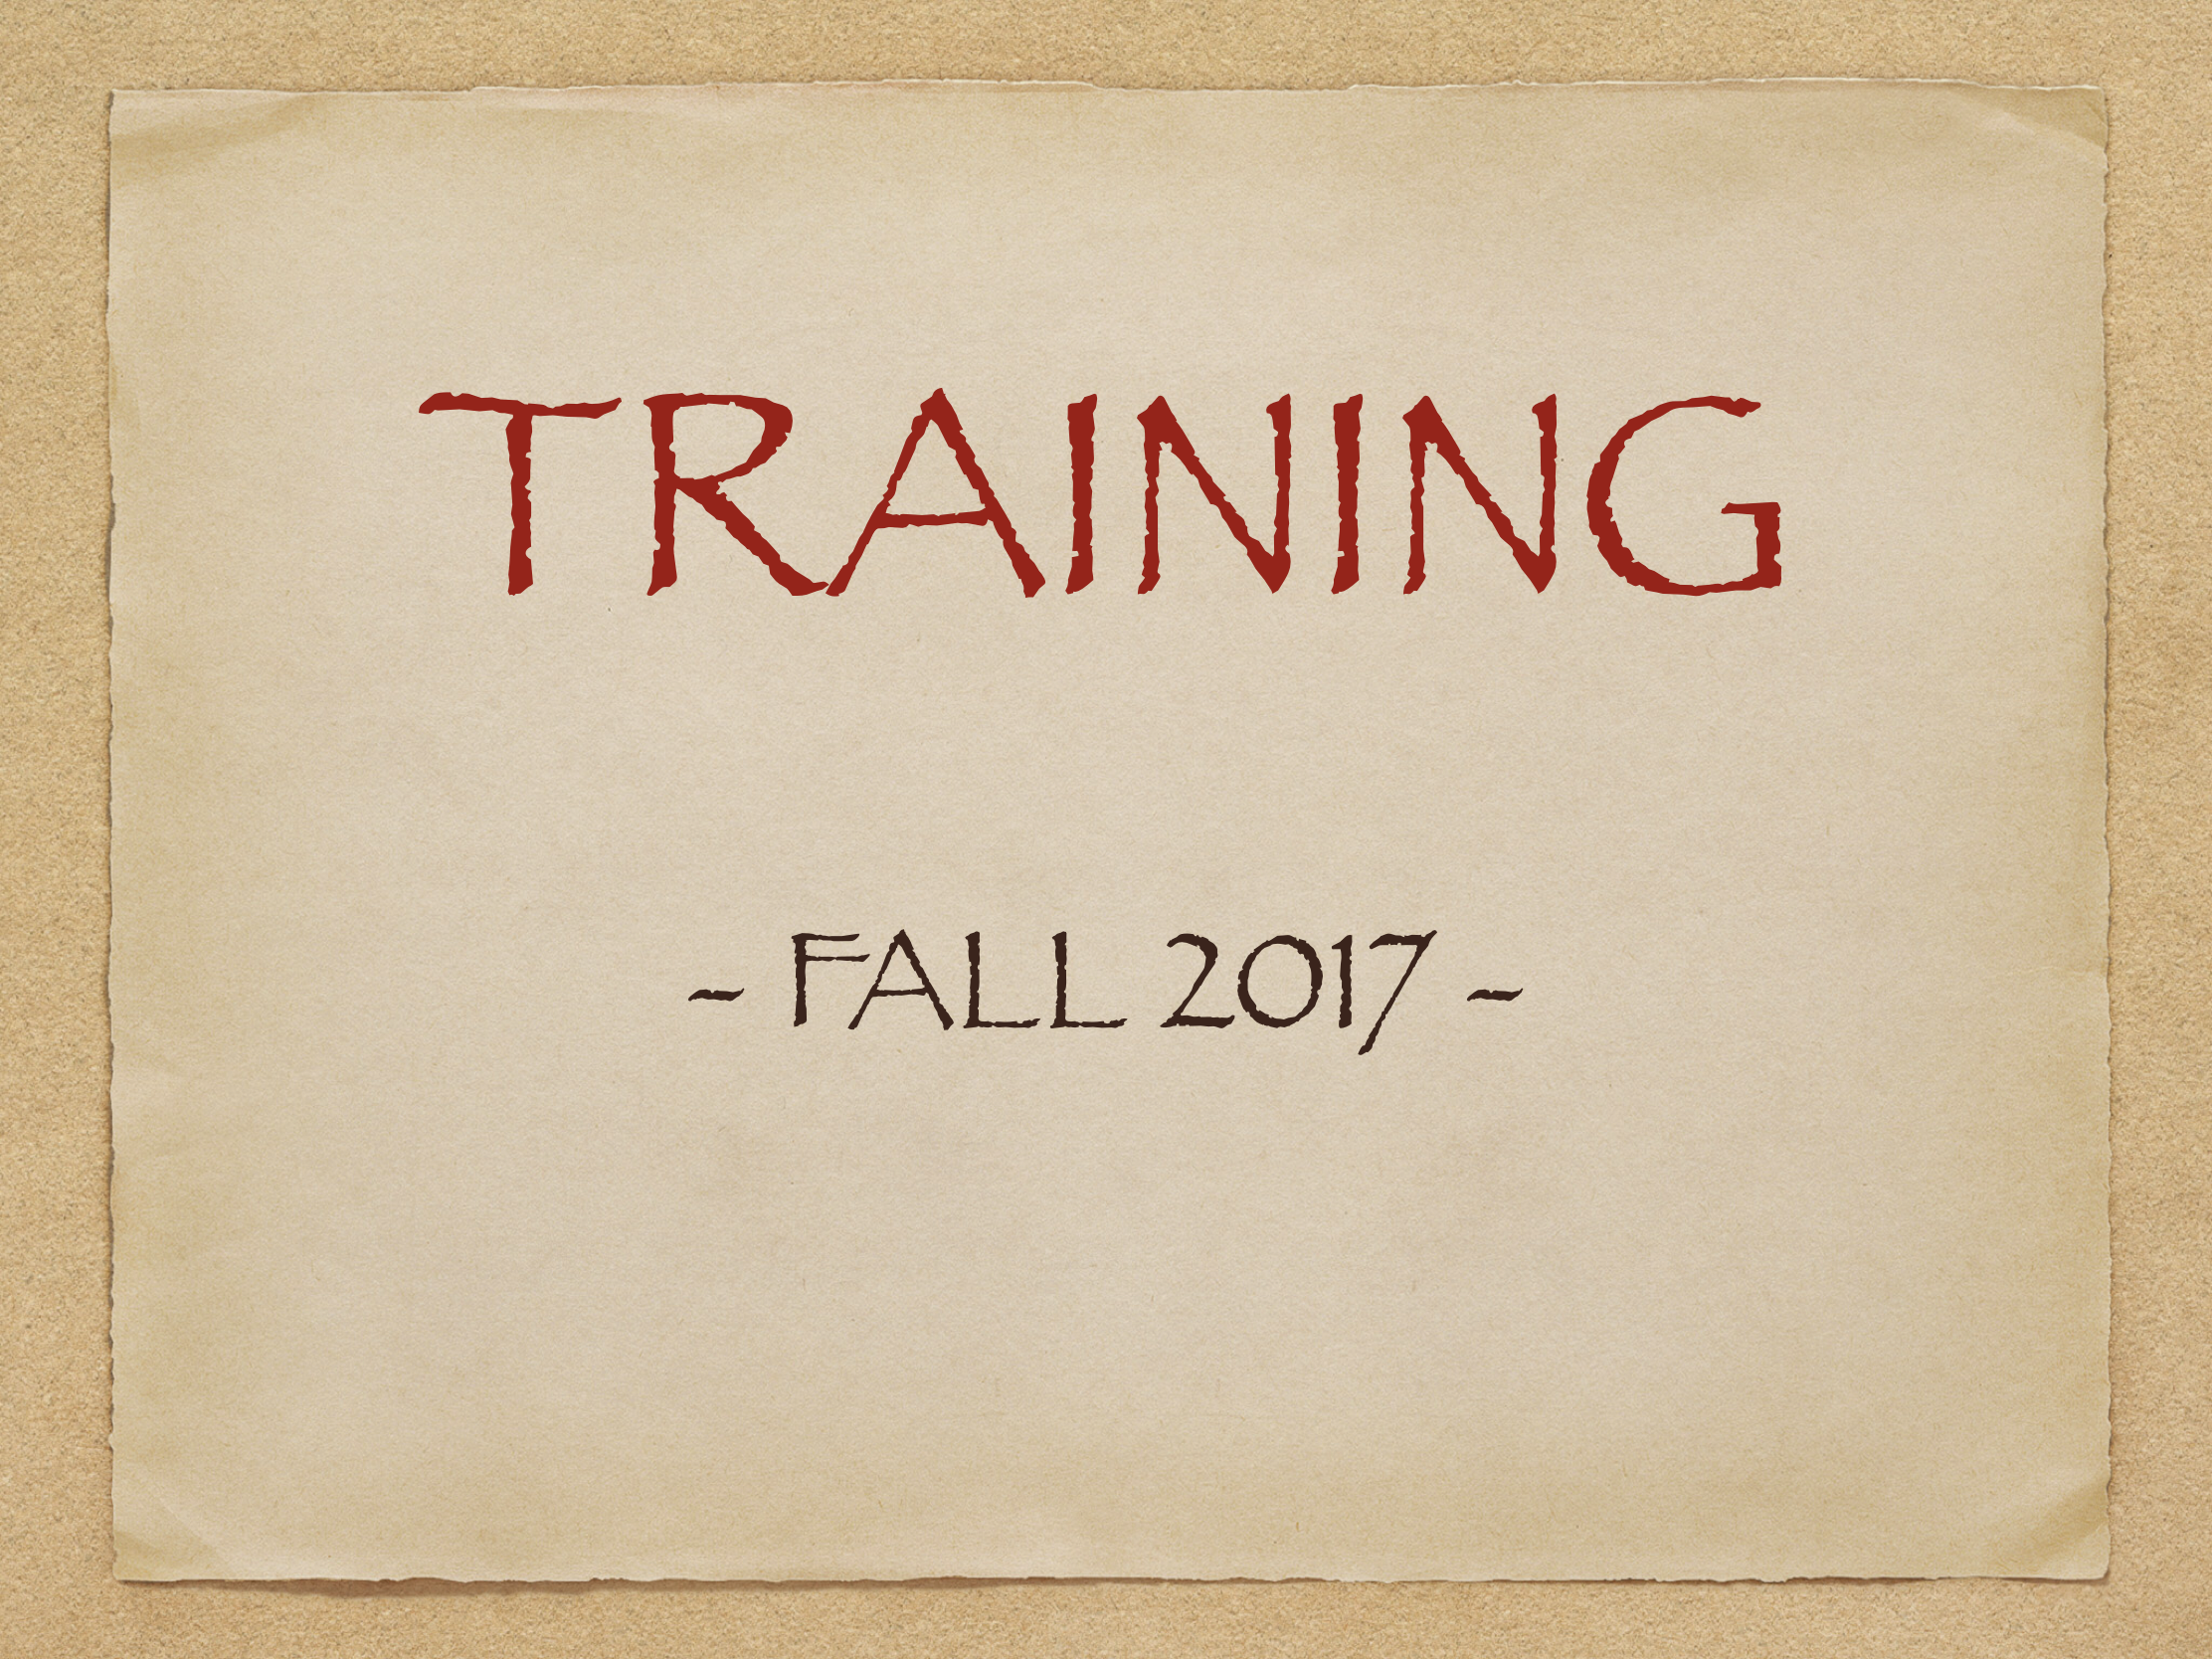 training title